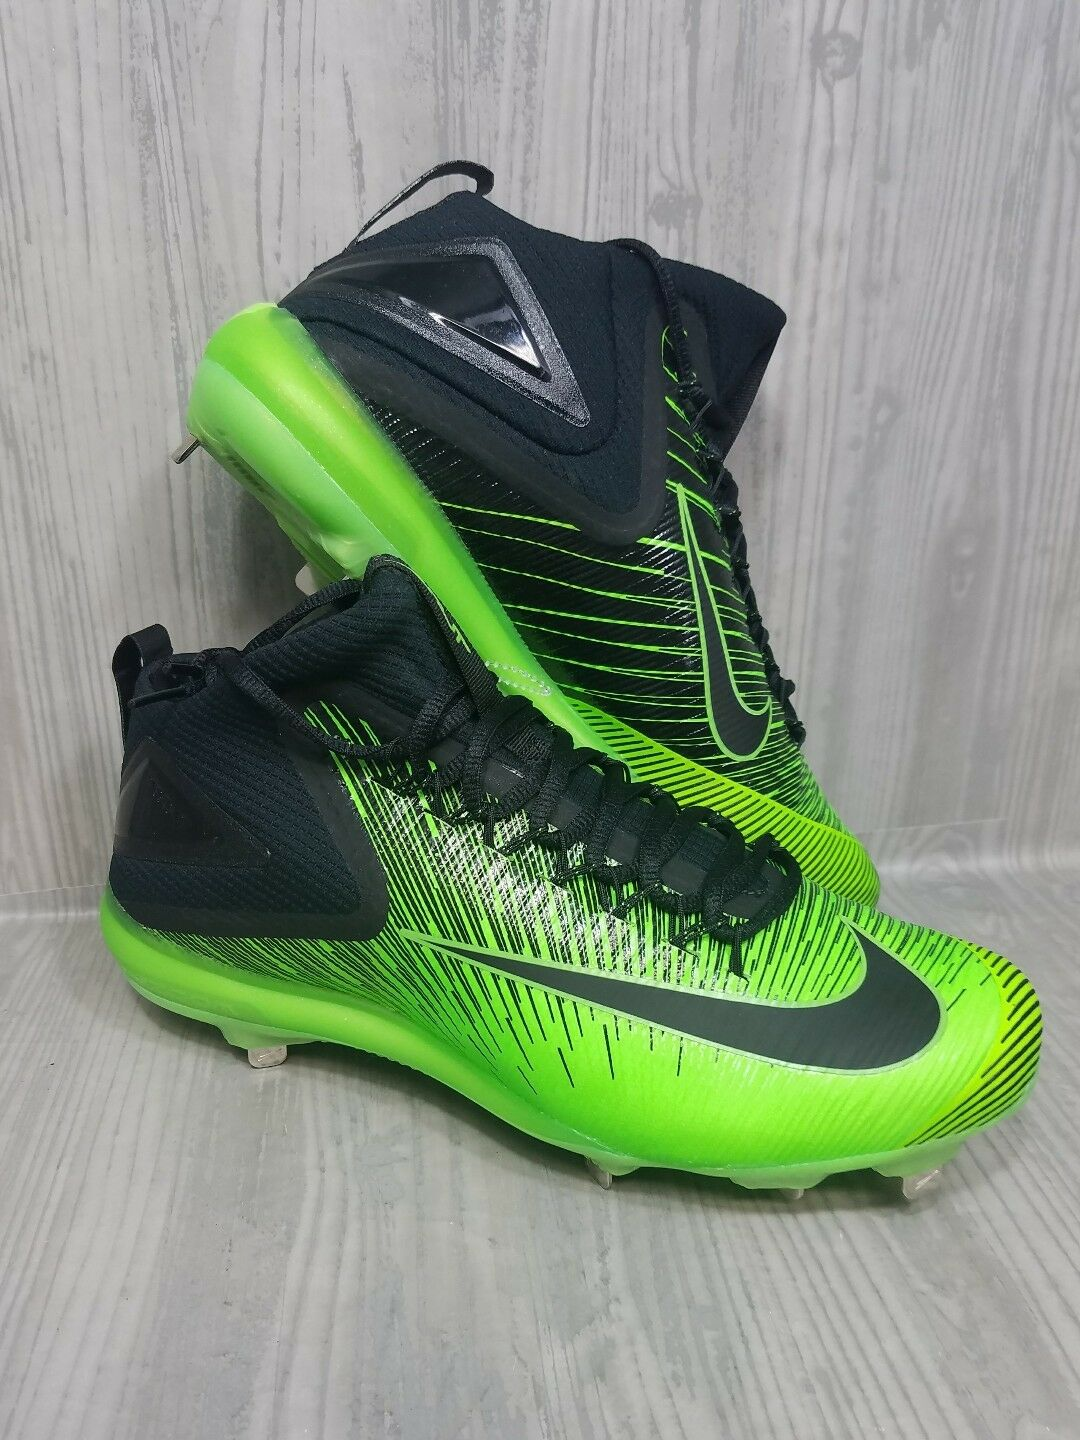 6397bdc2a Nike Zoom Mike Trout Trout Trout 3 ASG Metal Baseball Cleats Black Green Mens  Size 11.5 d2aa73